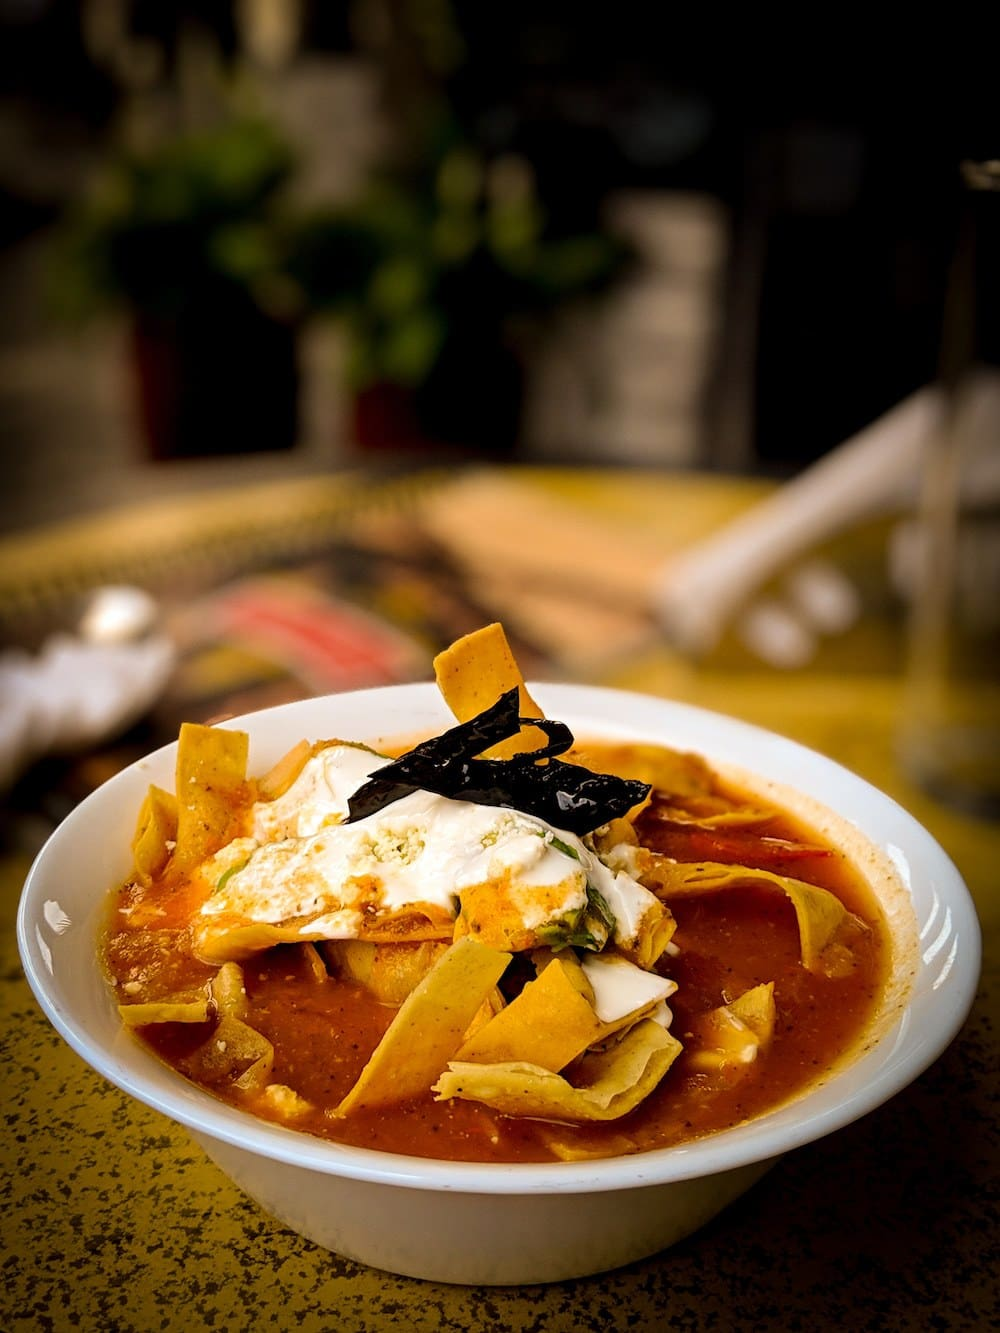 Sopa de tortilla basically a tomato soup filled with fried tortilla chip strips